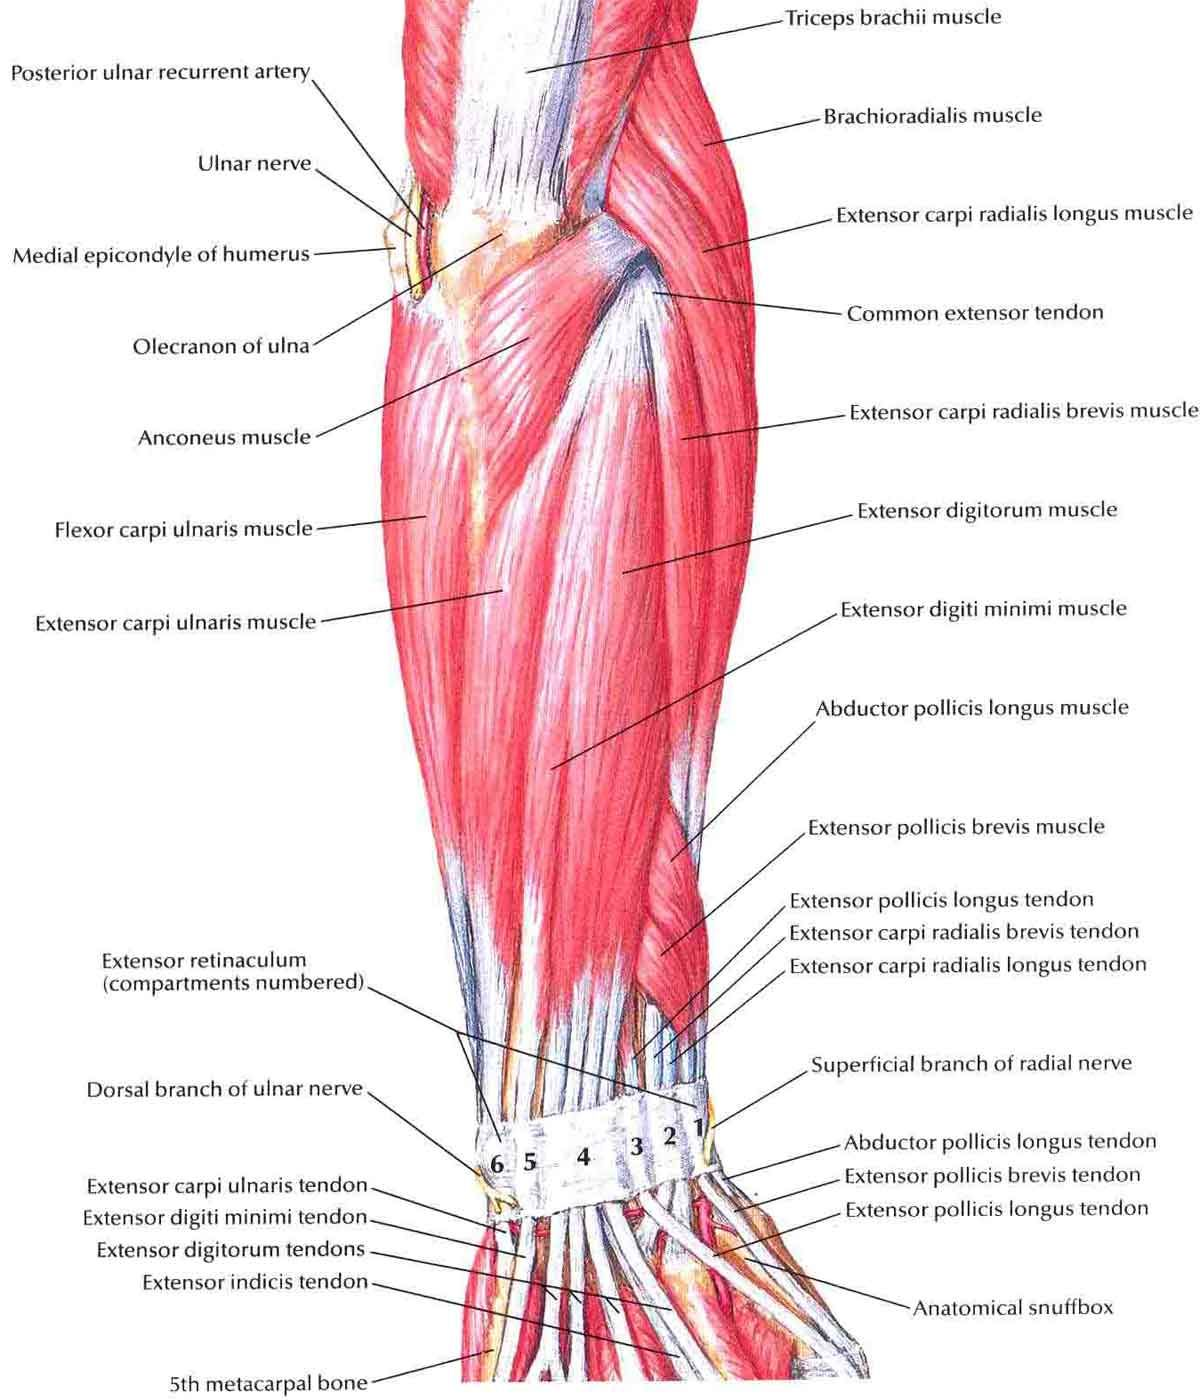 hight resolution of diagram extensor tendons forearm wiring diagram forward forearm tendon diagram